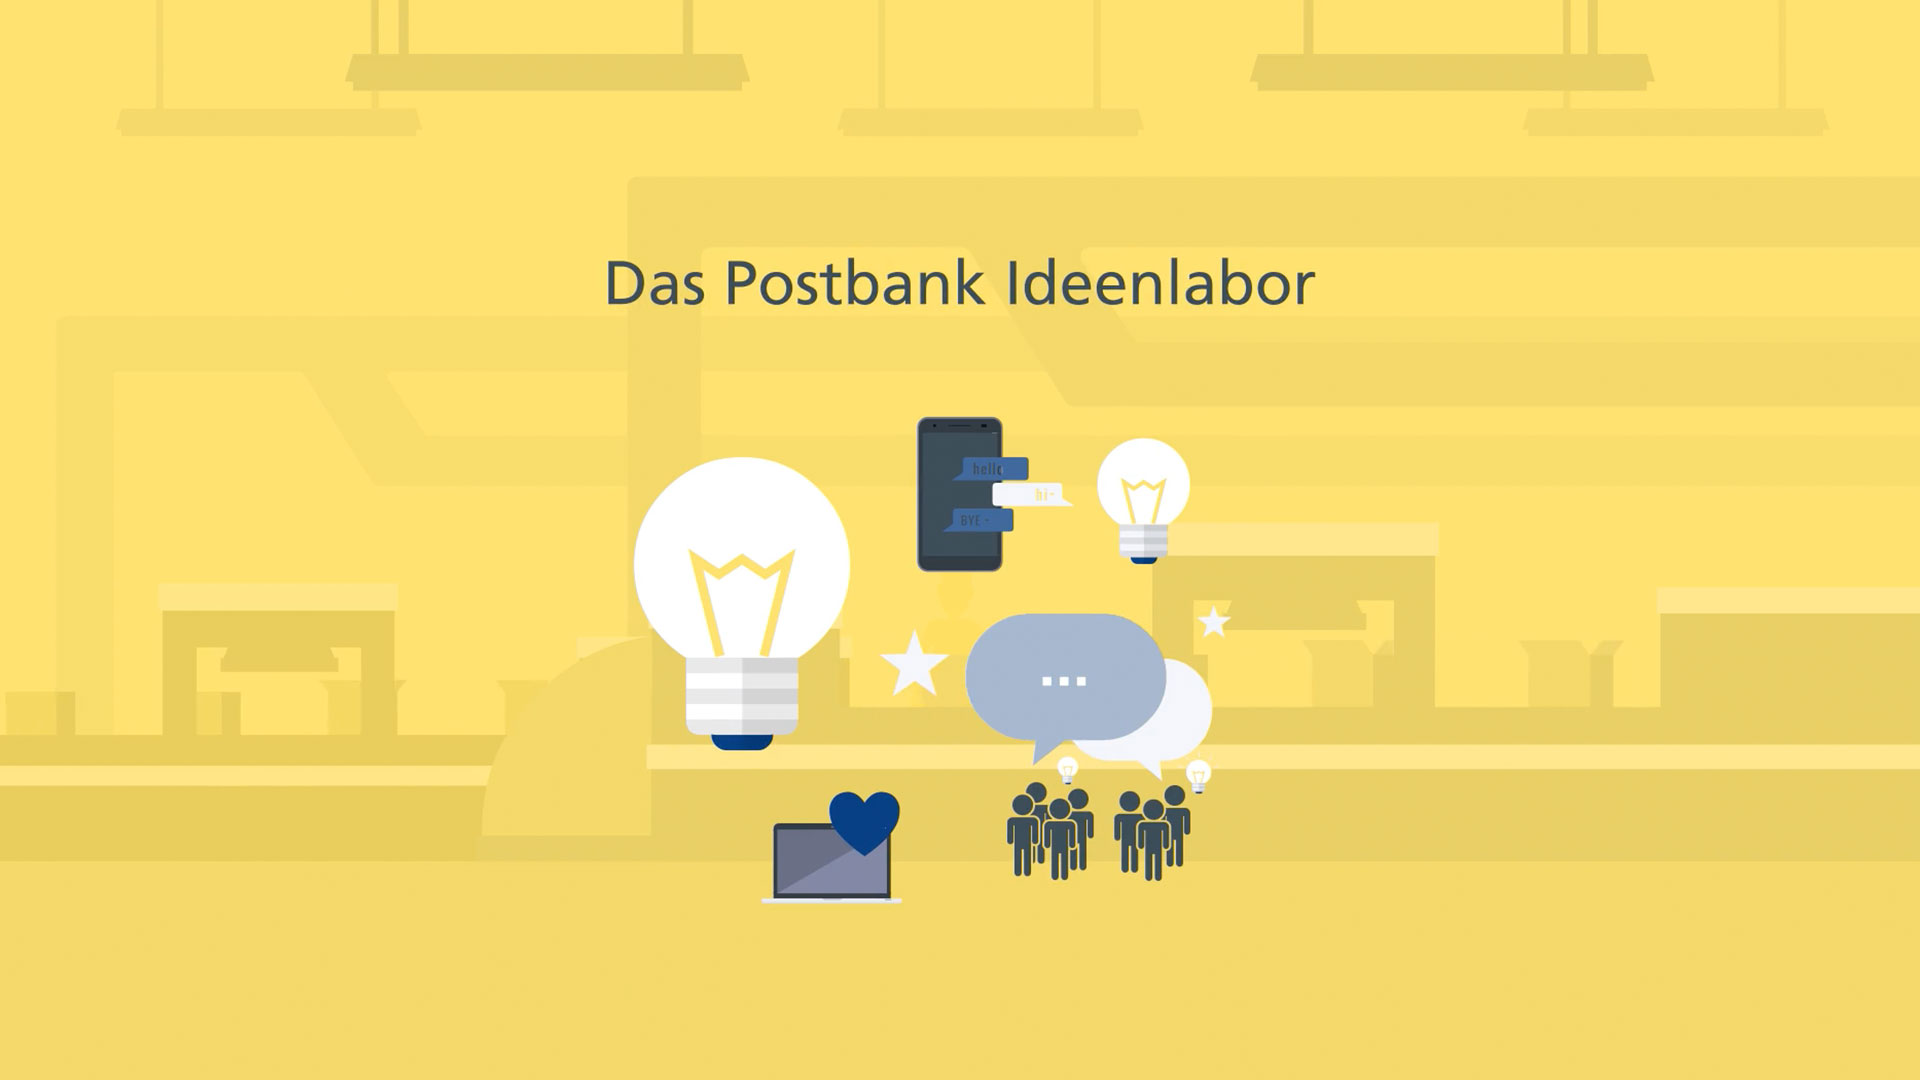 postbank-themenwelten-ideenlabor-video-1920x1080.jpg